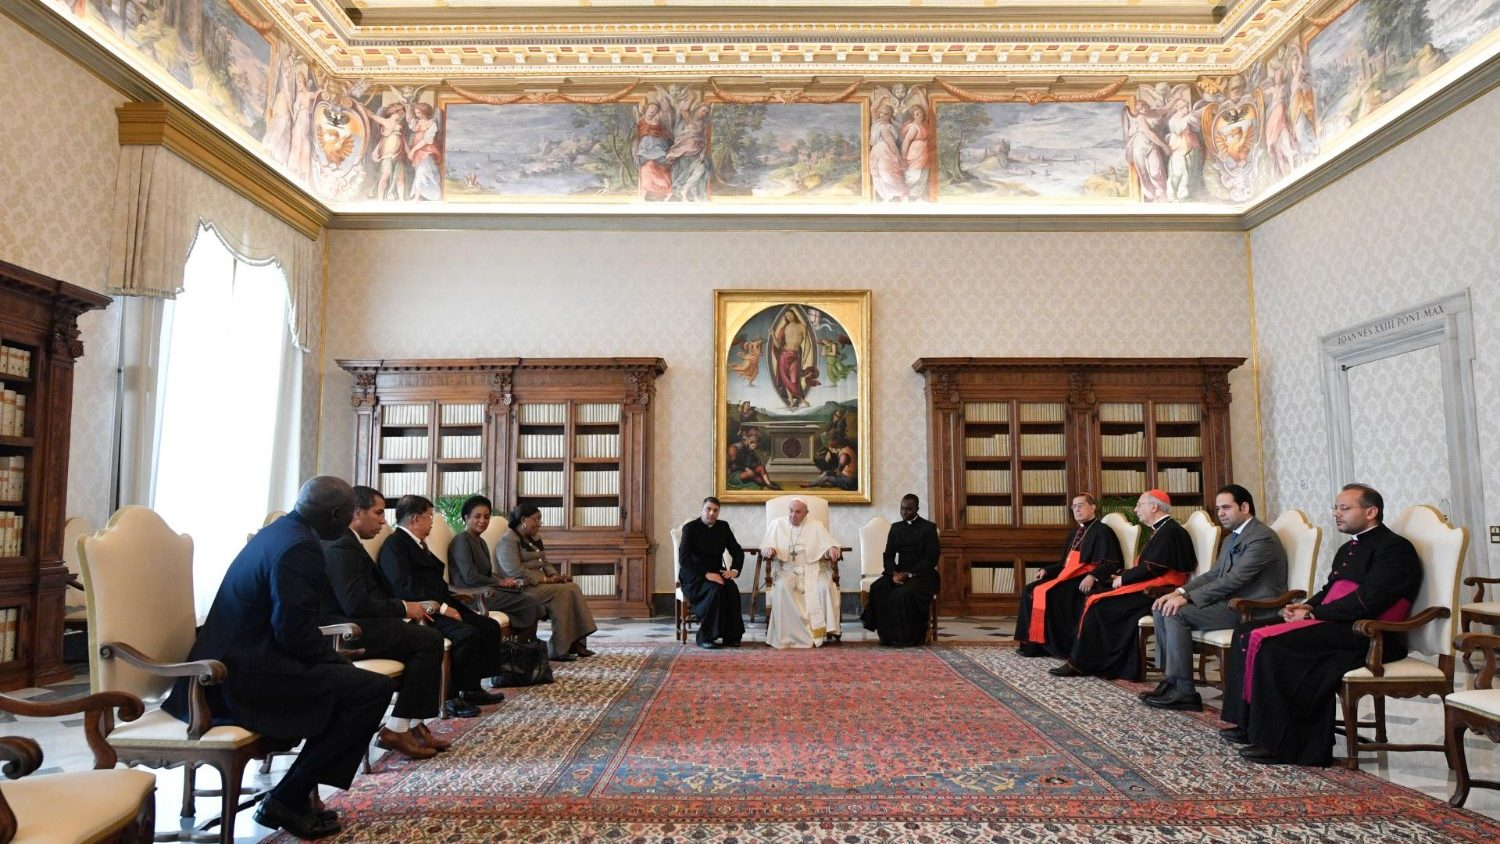 Pope meets with Zayed Award judging panel - Vatican News